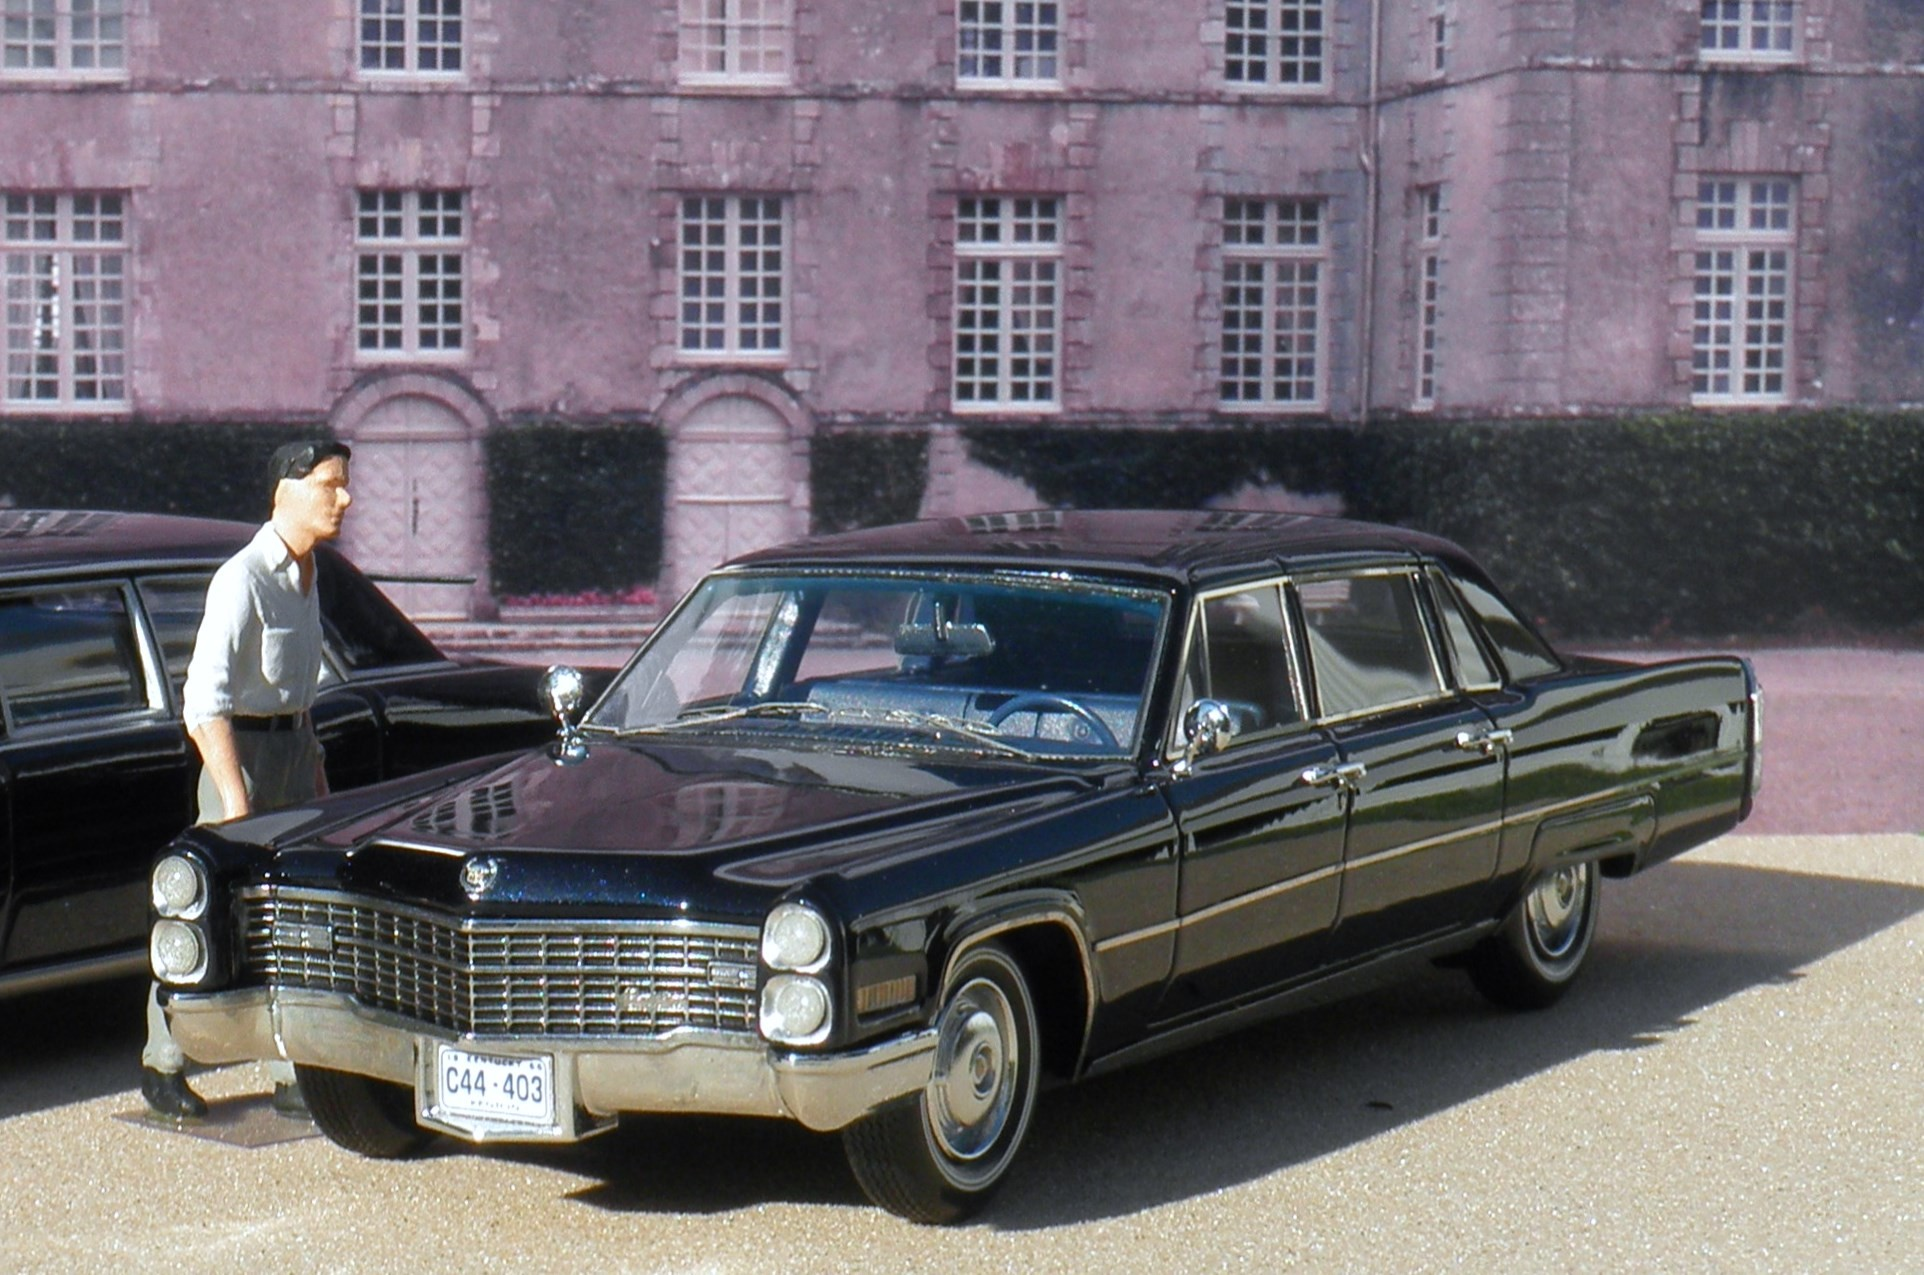 Cadillac 66 series75 Fleetwood imperial sedan (8) - Copie